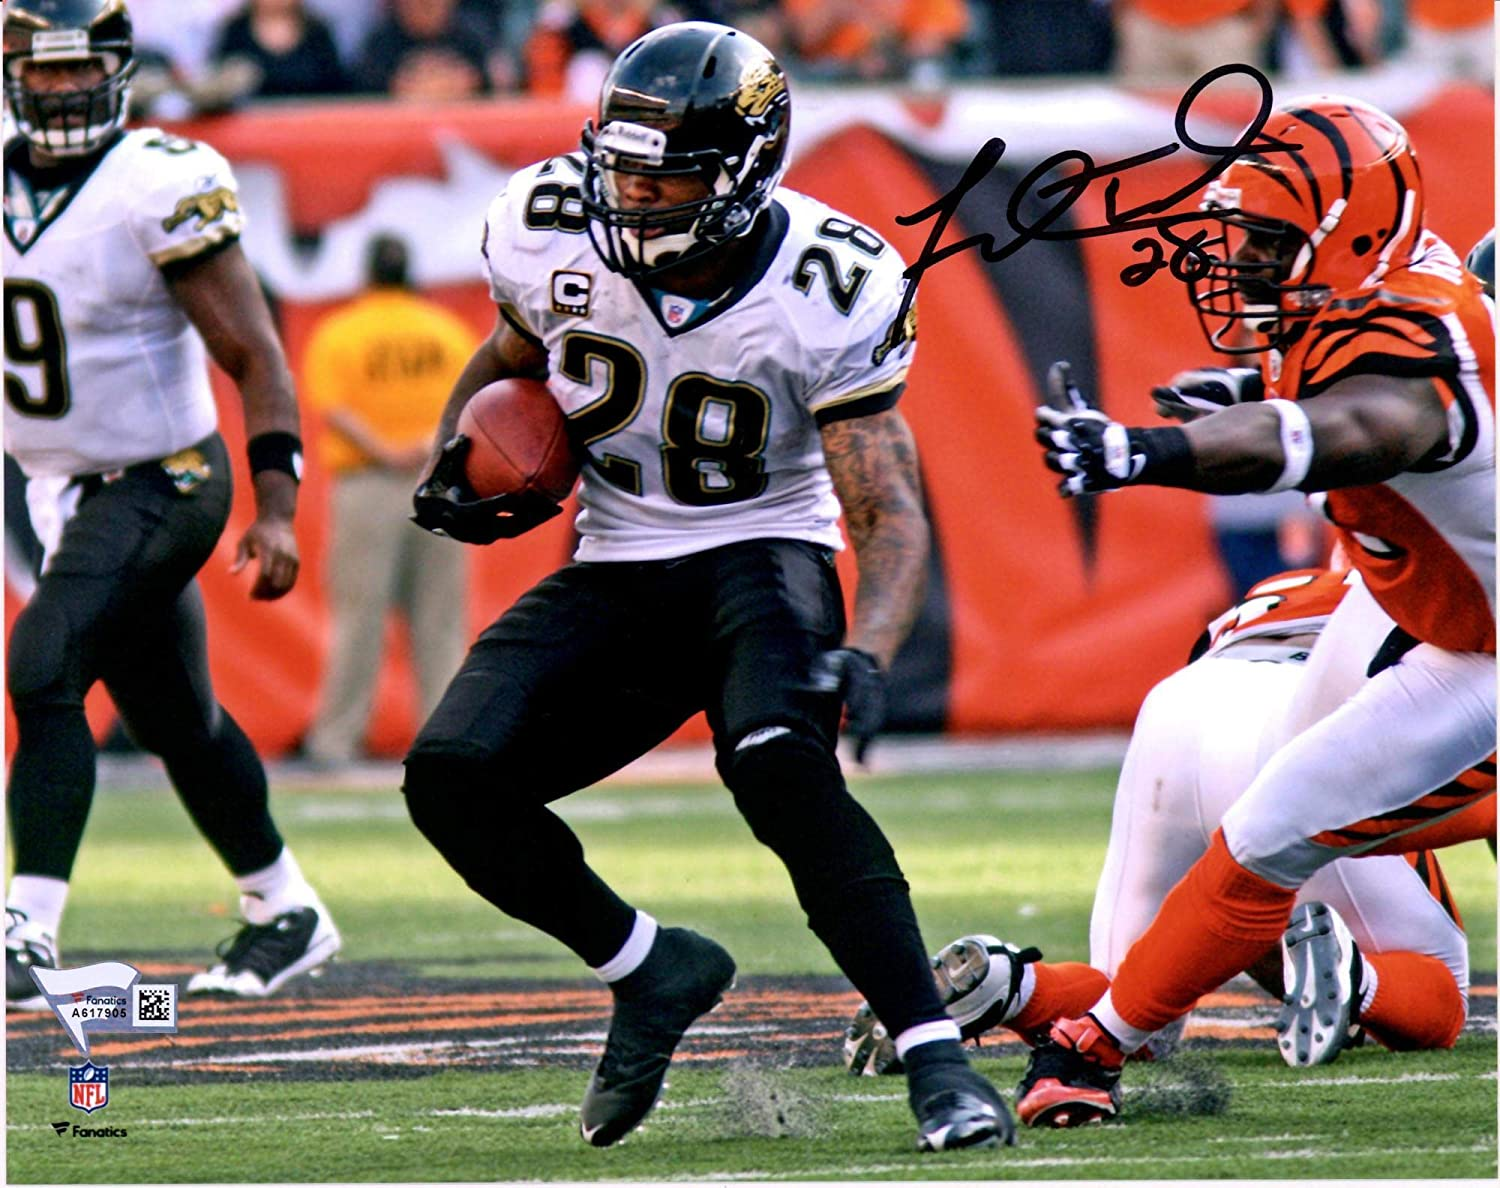 Fanatics Authentic Certified Fred Taylor Jacksonville Jaguars Autographed 8 x 10 White Cutting Photograph